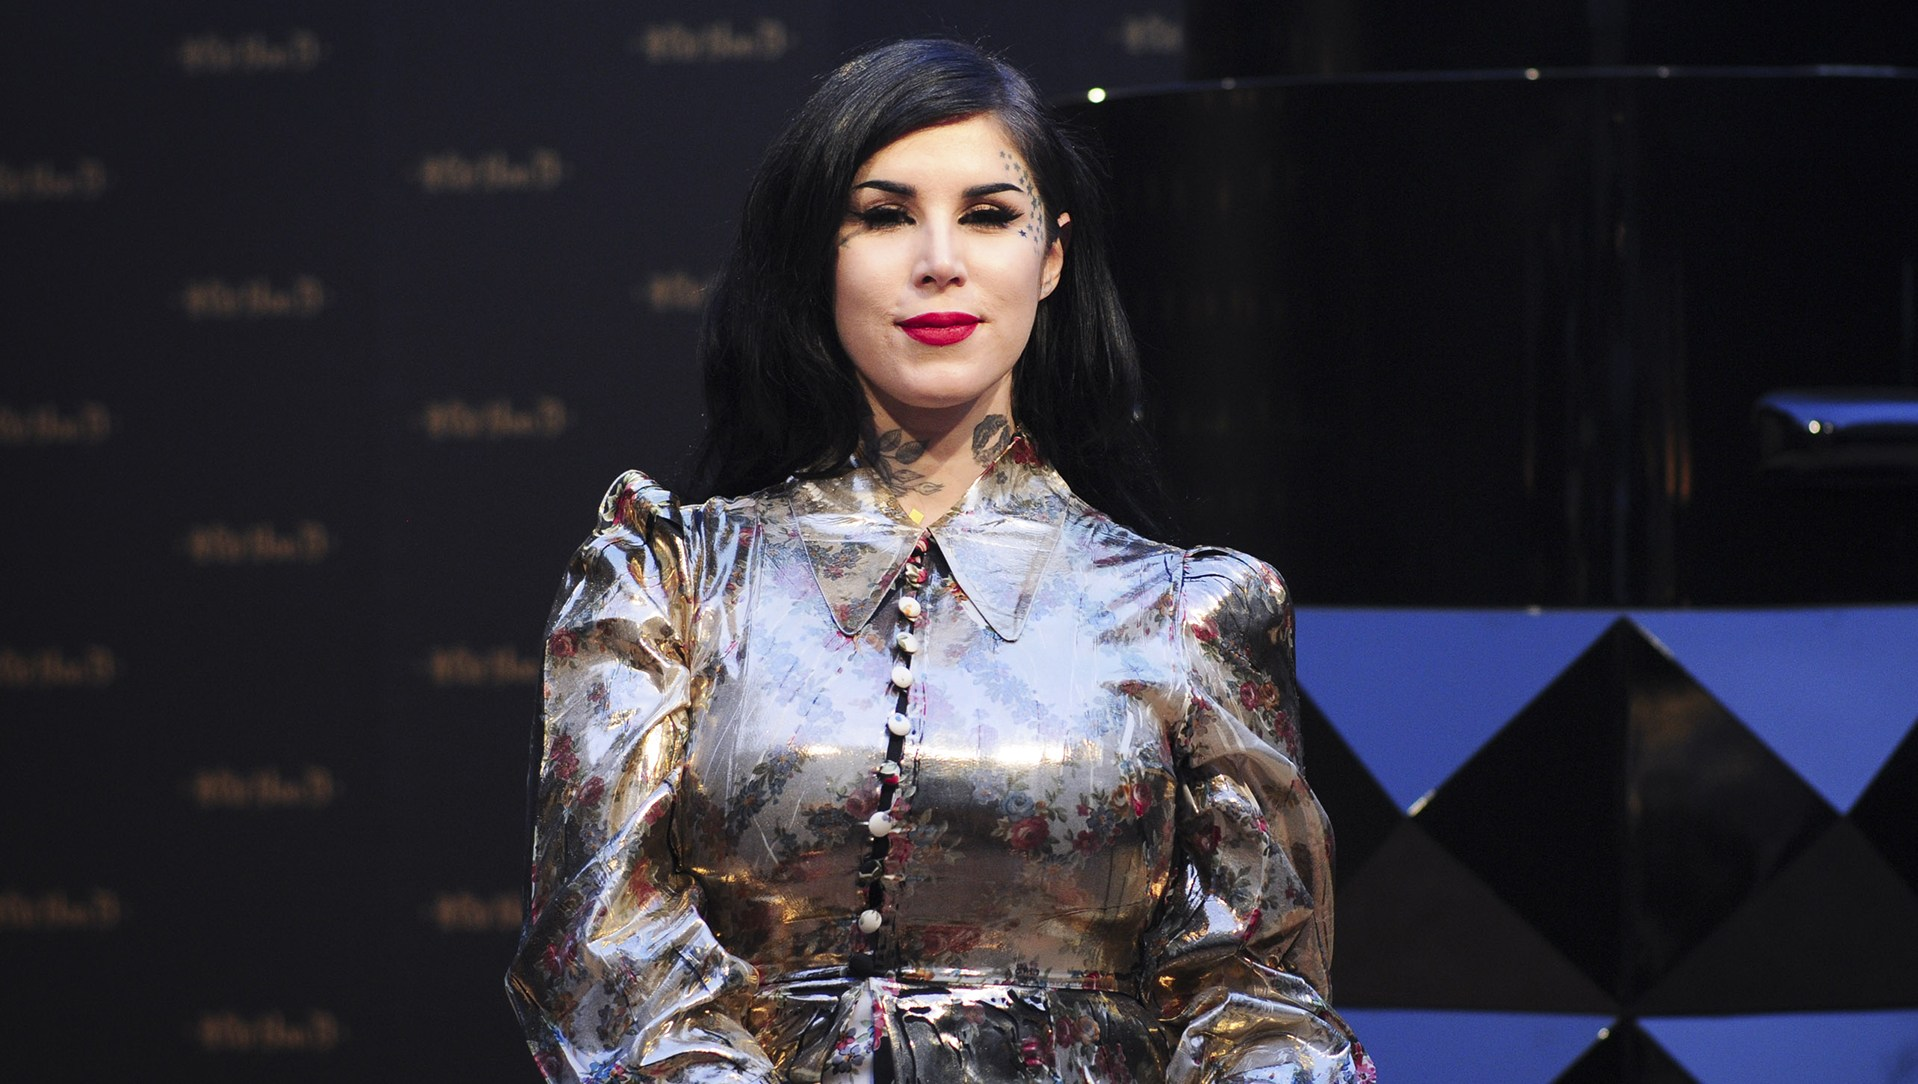 Kat Von D Recalls Asking for Breastmilk Donation for Baby Son Leafar